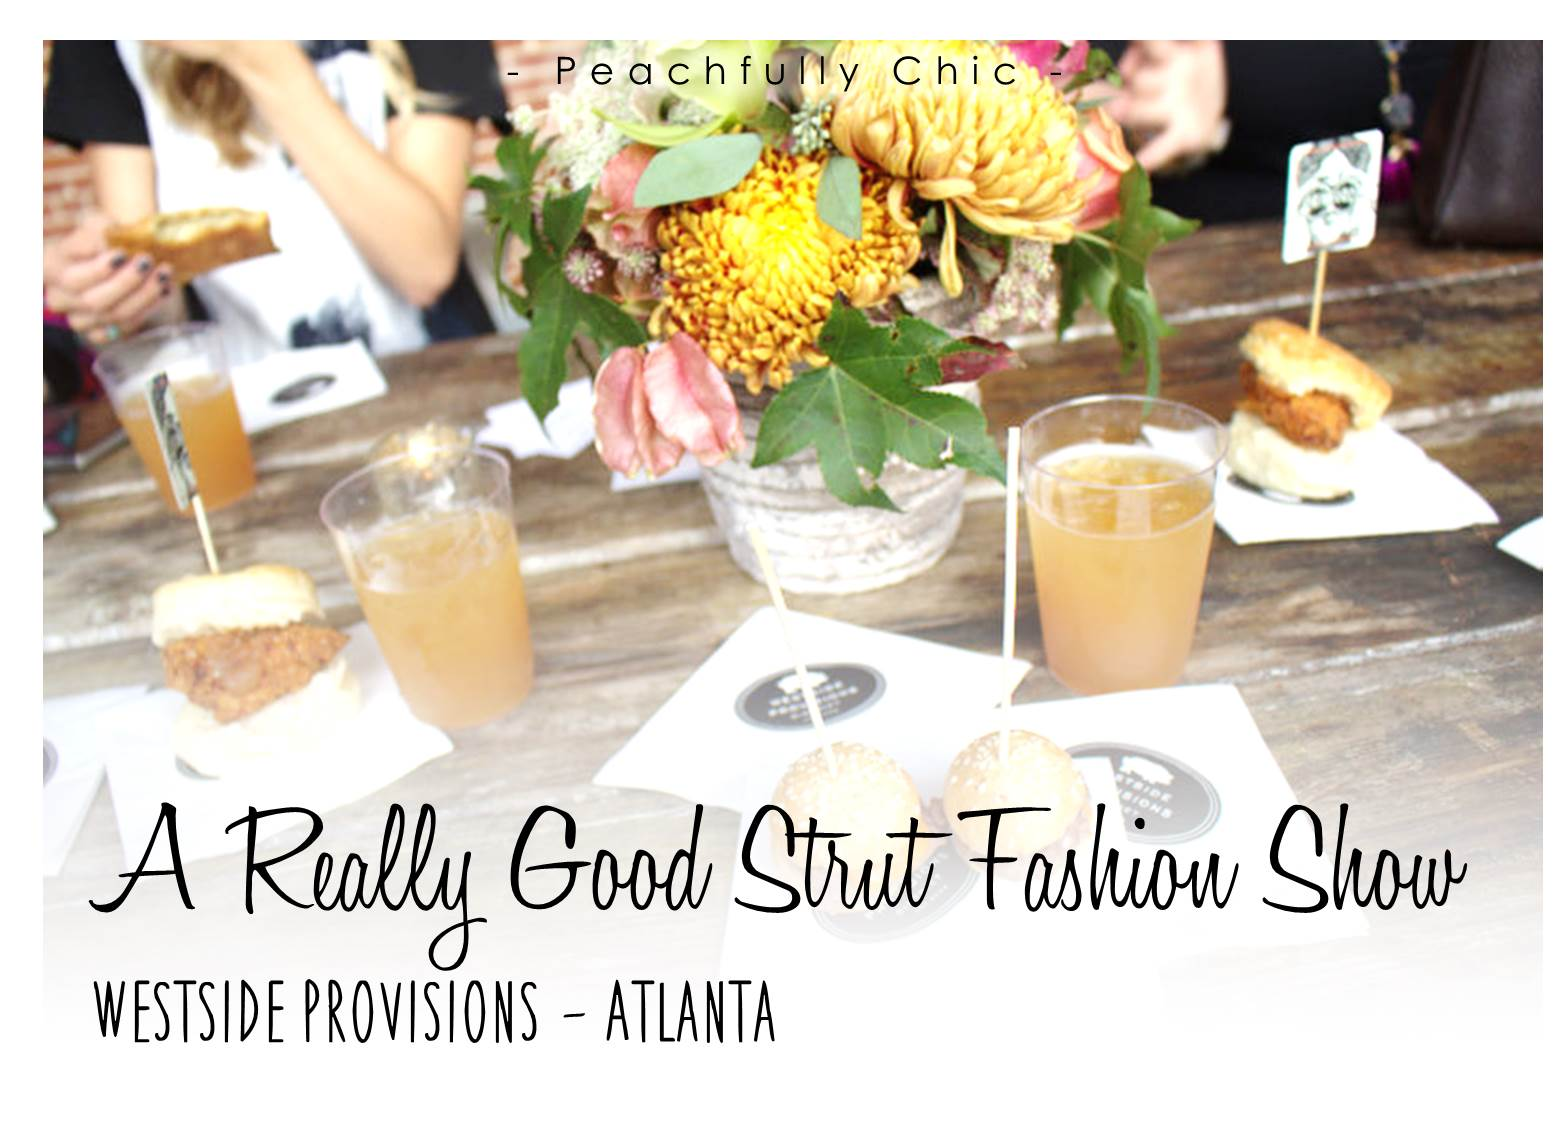 Westside-Provisions-A-Good-Strut-Fashion-Show-Event-Review-Peachfully-Chic-main